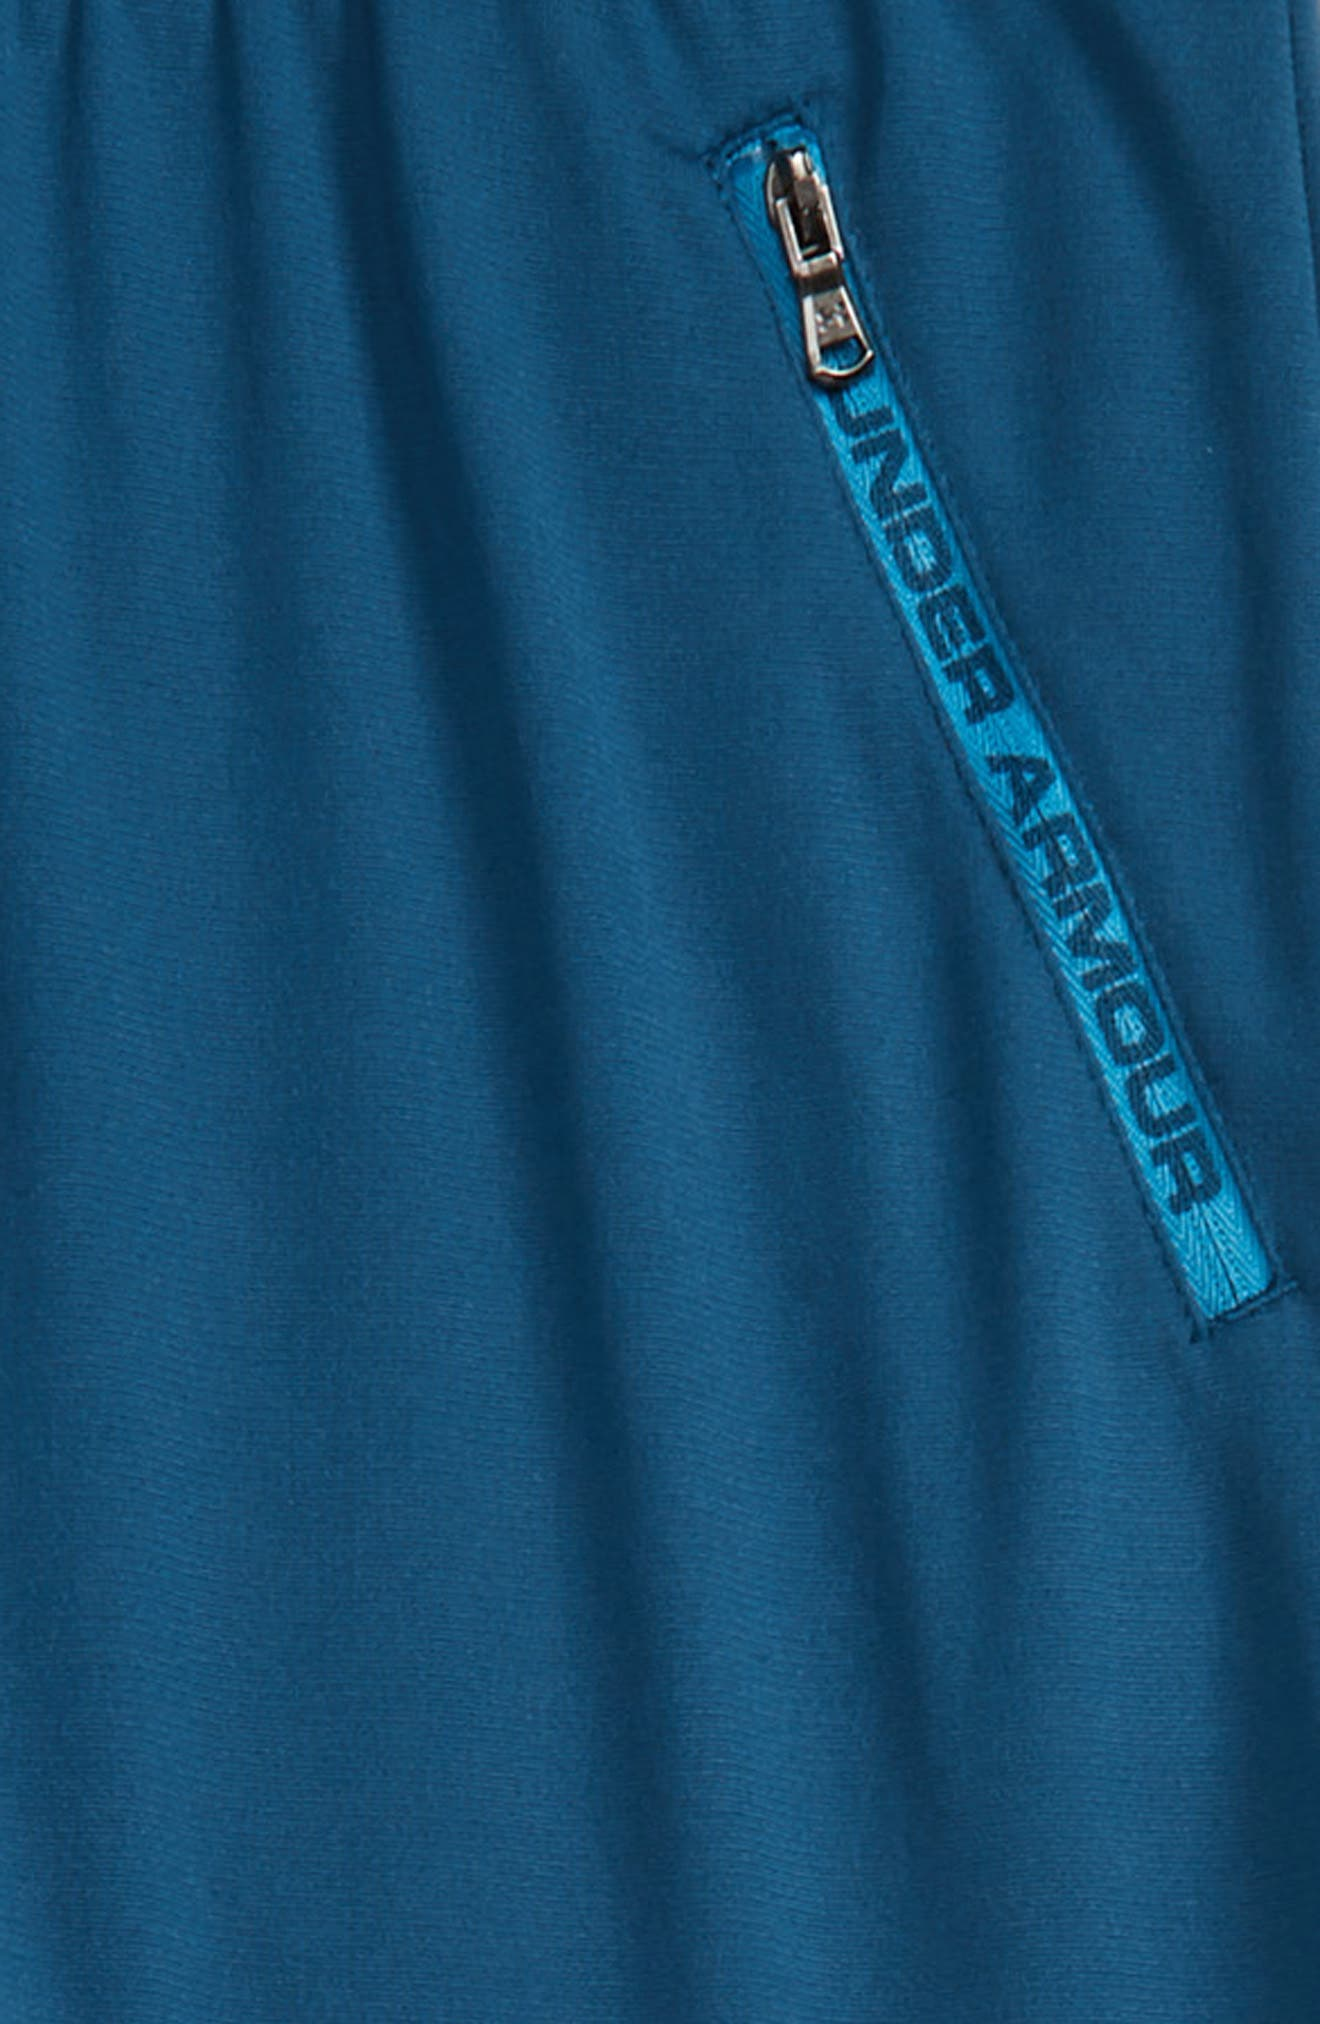 UNDER ARMOUR, Pennant Tapered Sweatpants, Alternate thumbnail 2, color, PETROL BLUE/ ETHER BLUE